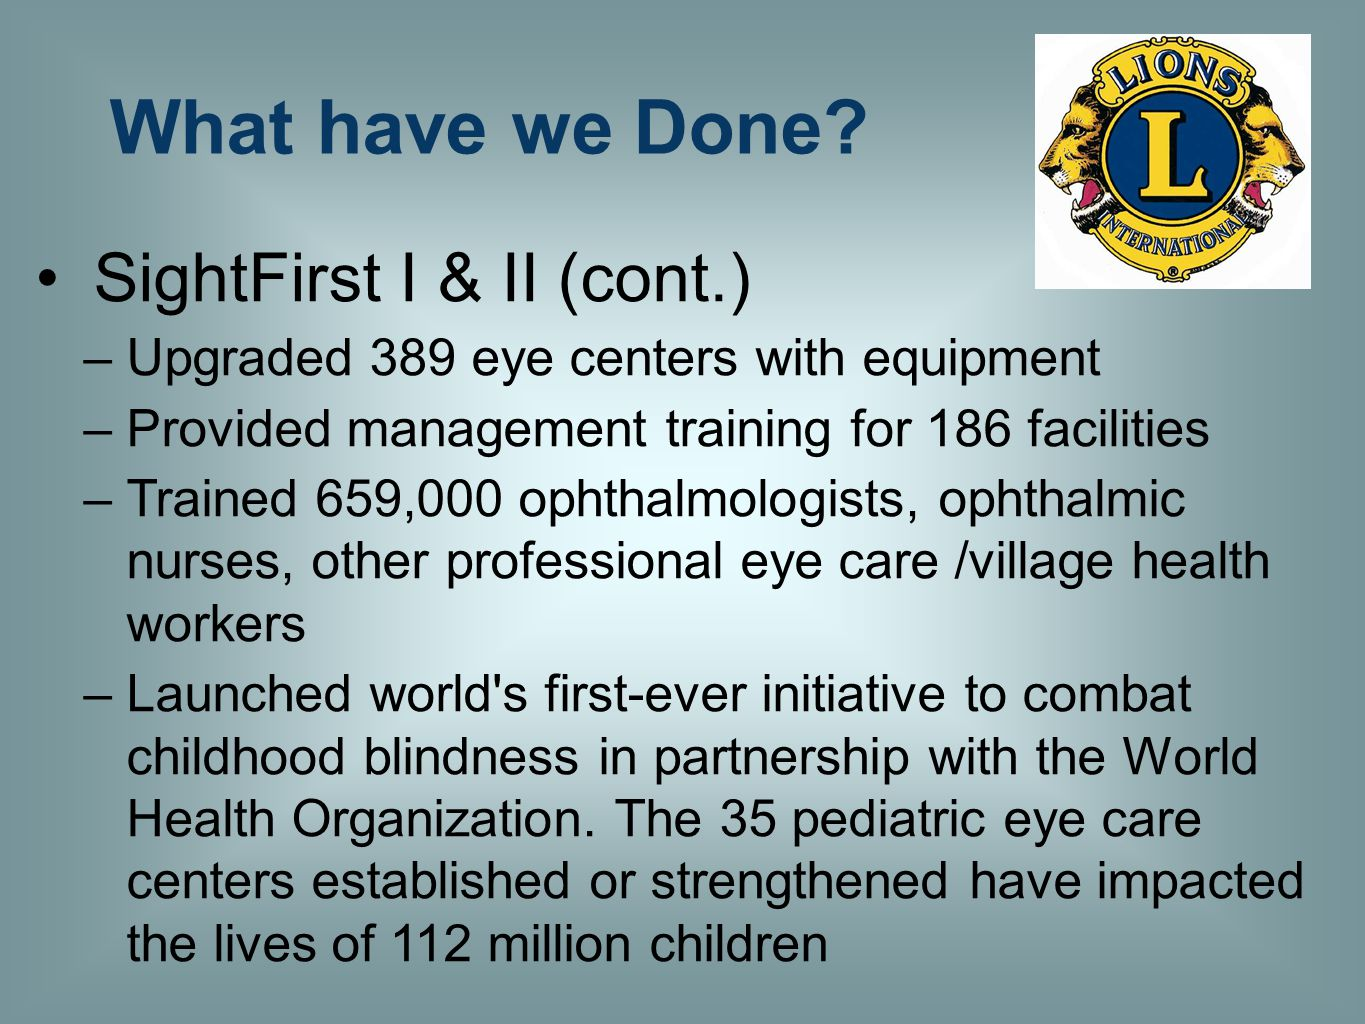 SightFirst I & II (cont.) –Upgraded 389 eye centers with equipment –Provided management training for 186 facilities –Trained 659,000 ophthalmologists,